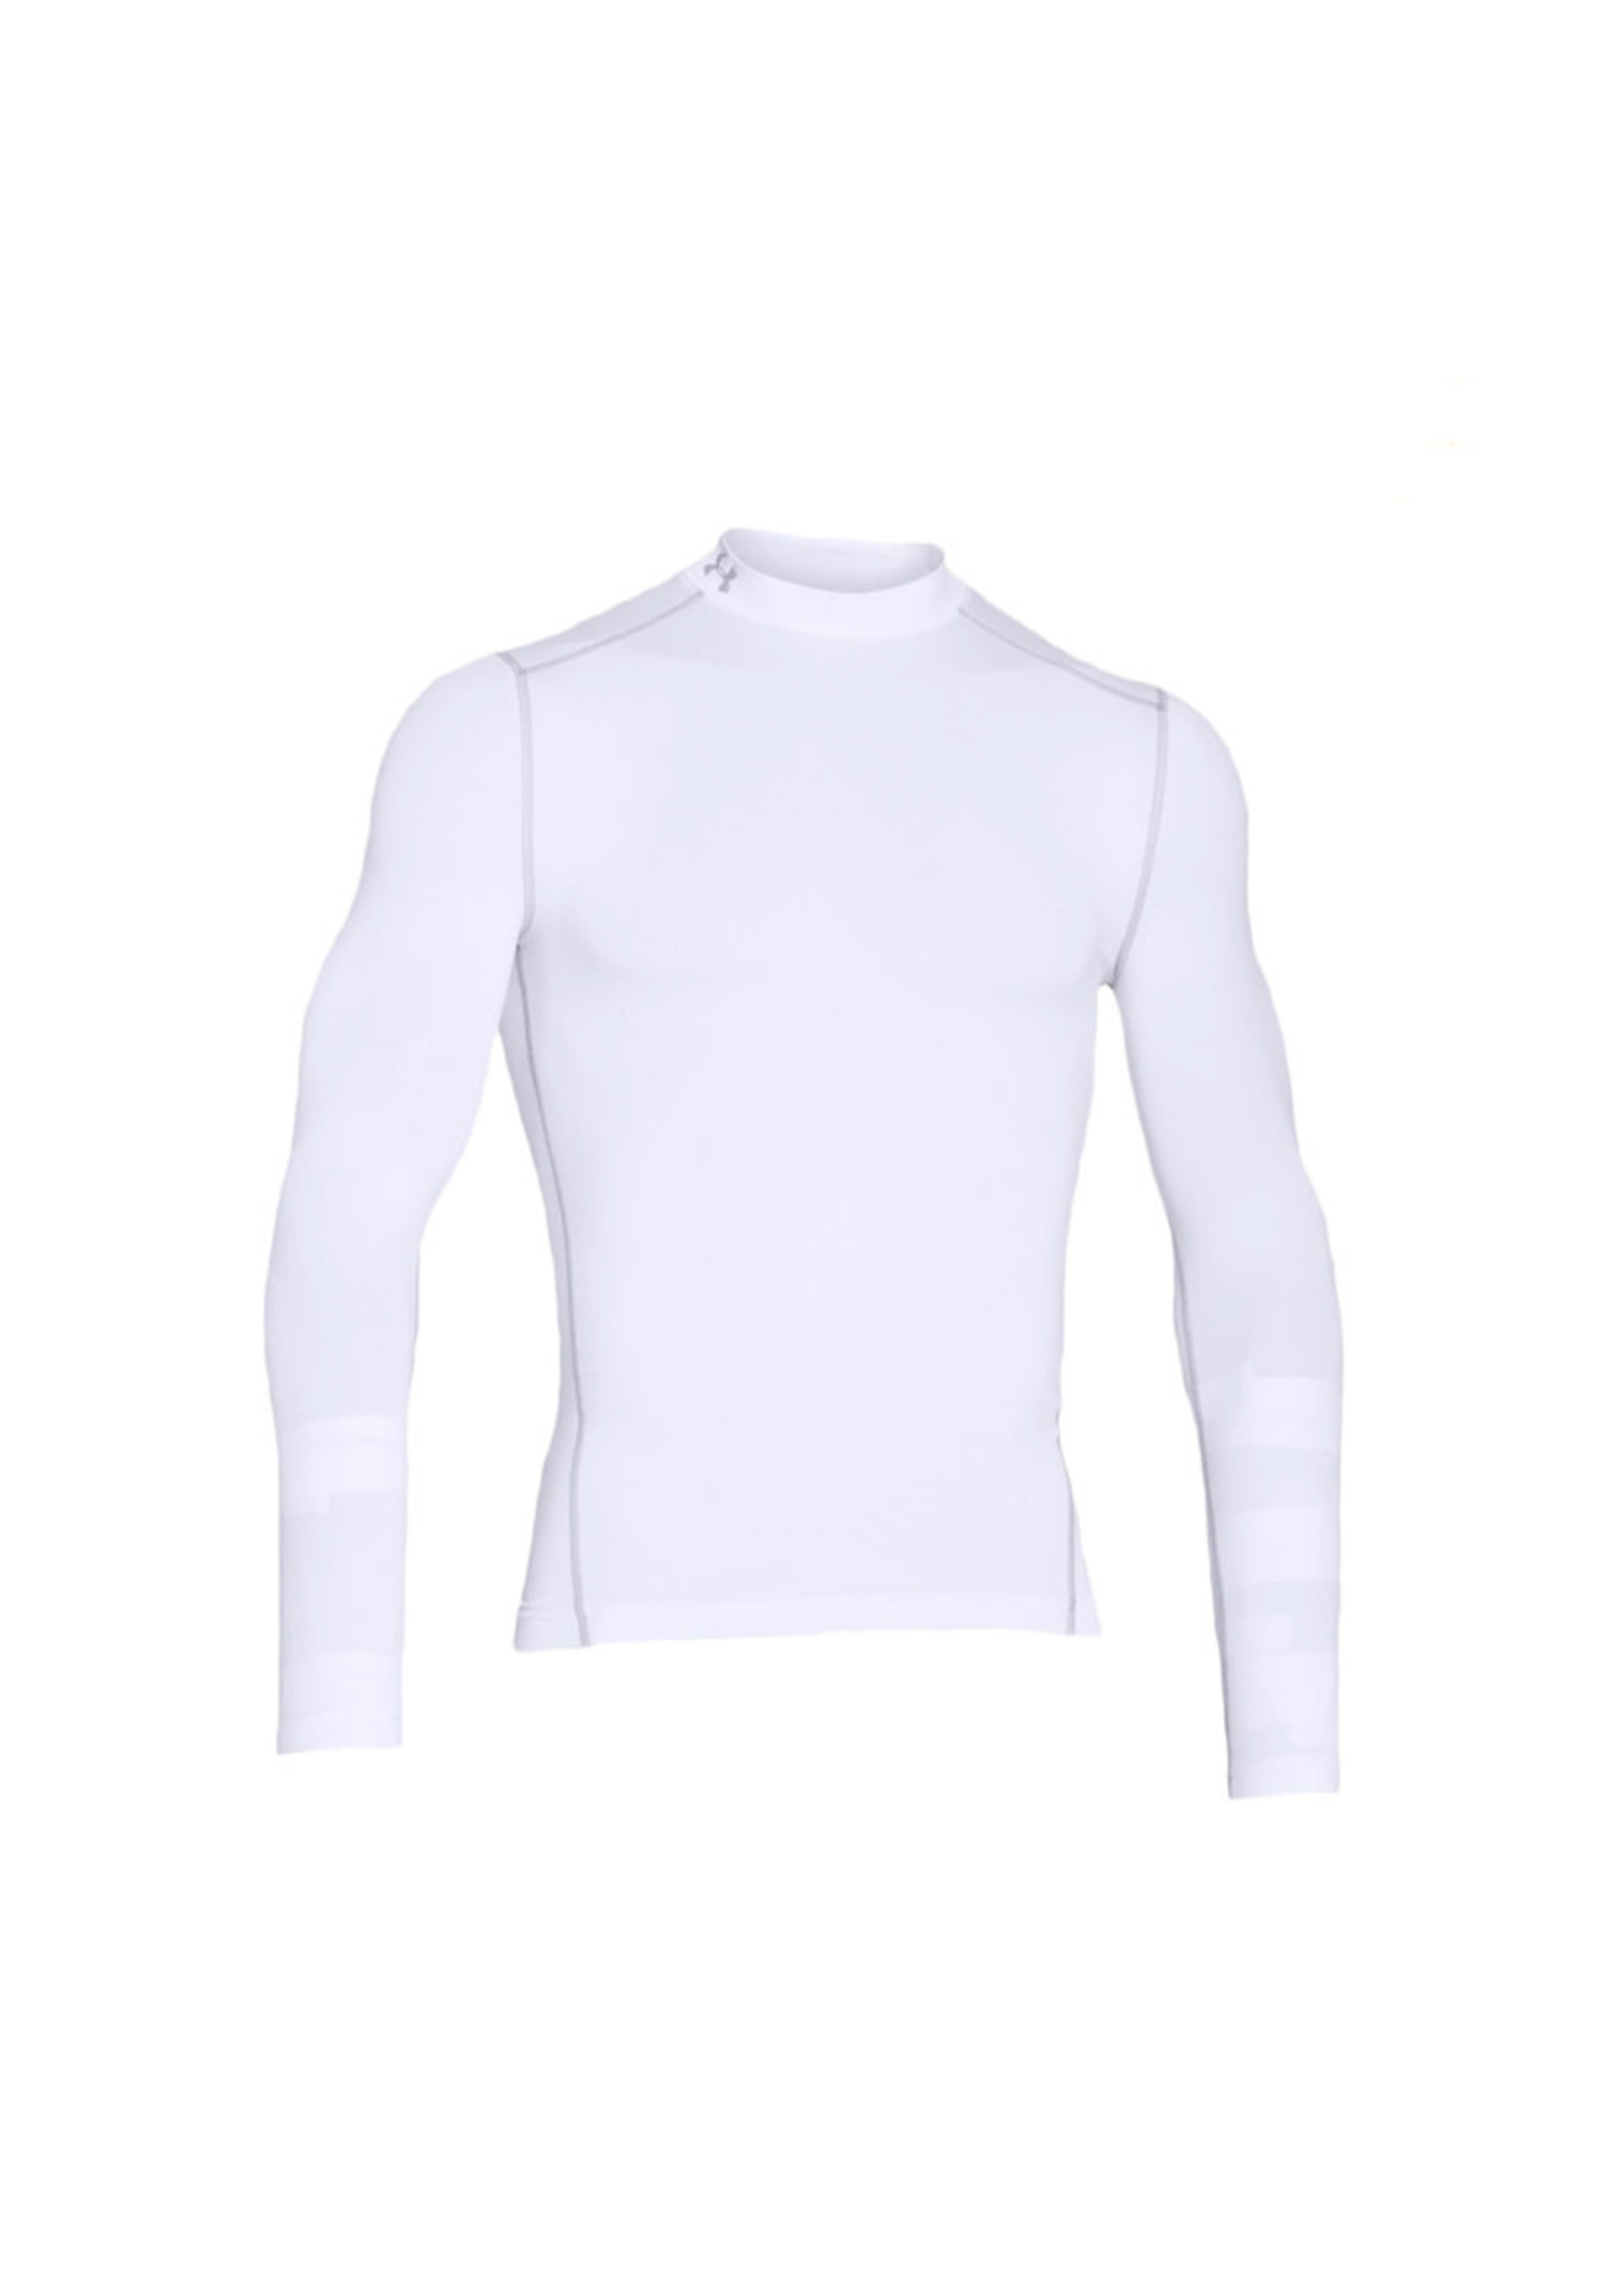 Under Armour Compression Top Mock CG